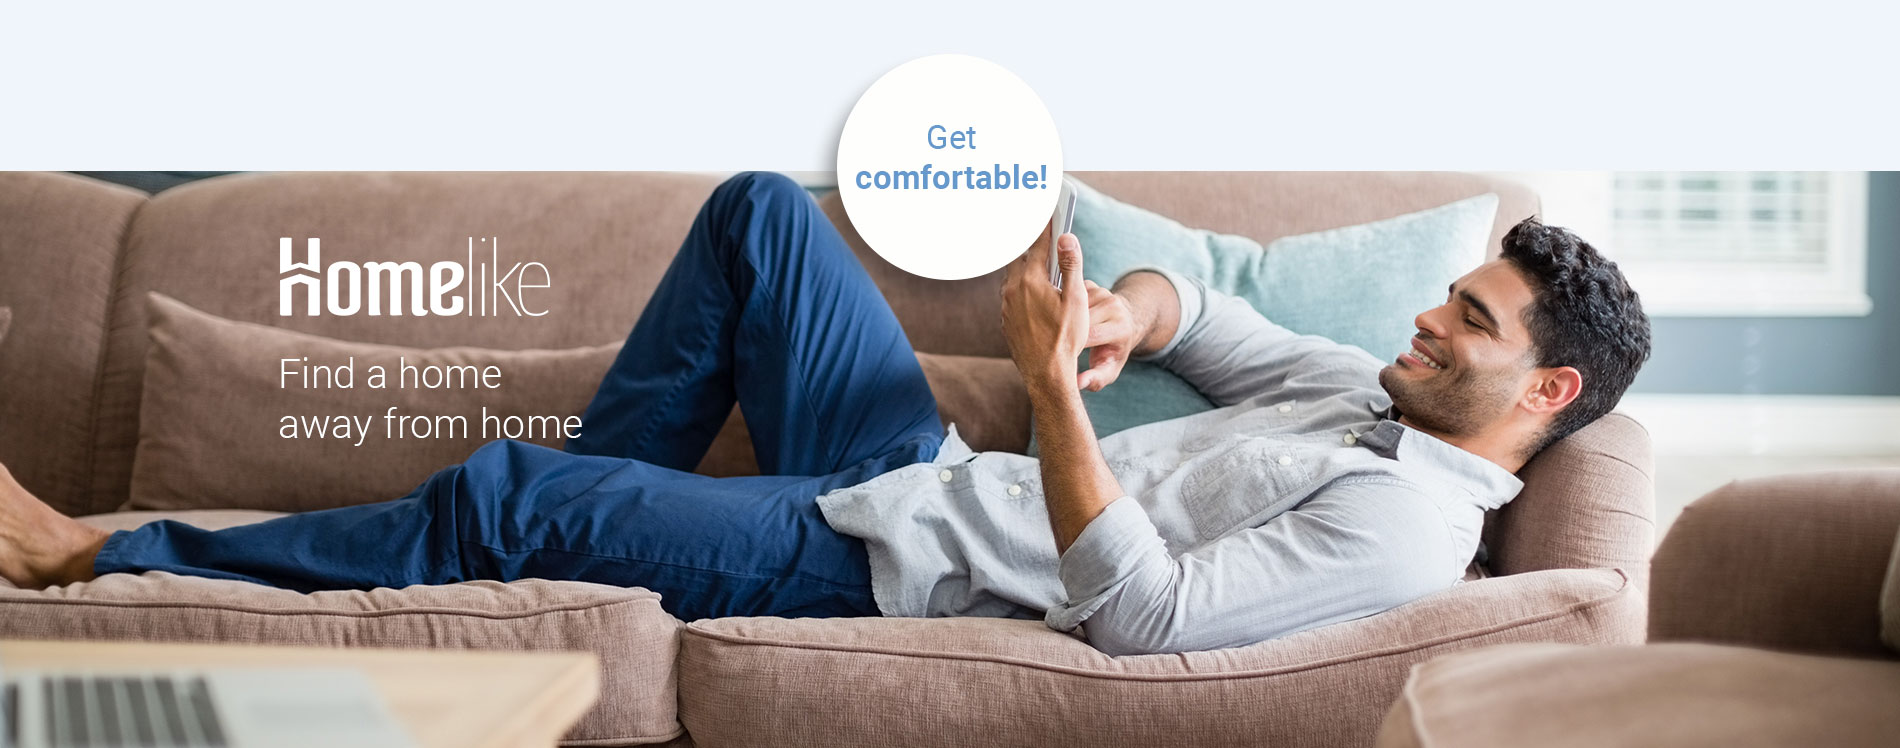 Here you would see someone on a business trip getting comfortable in his furnished apartment by Homelike